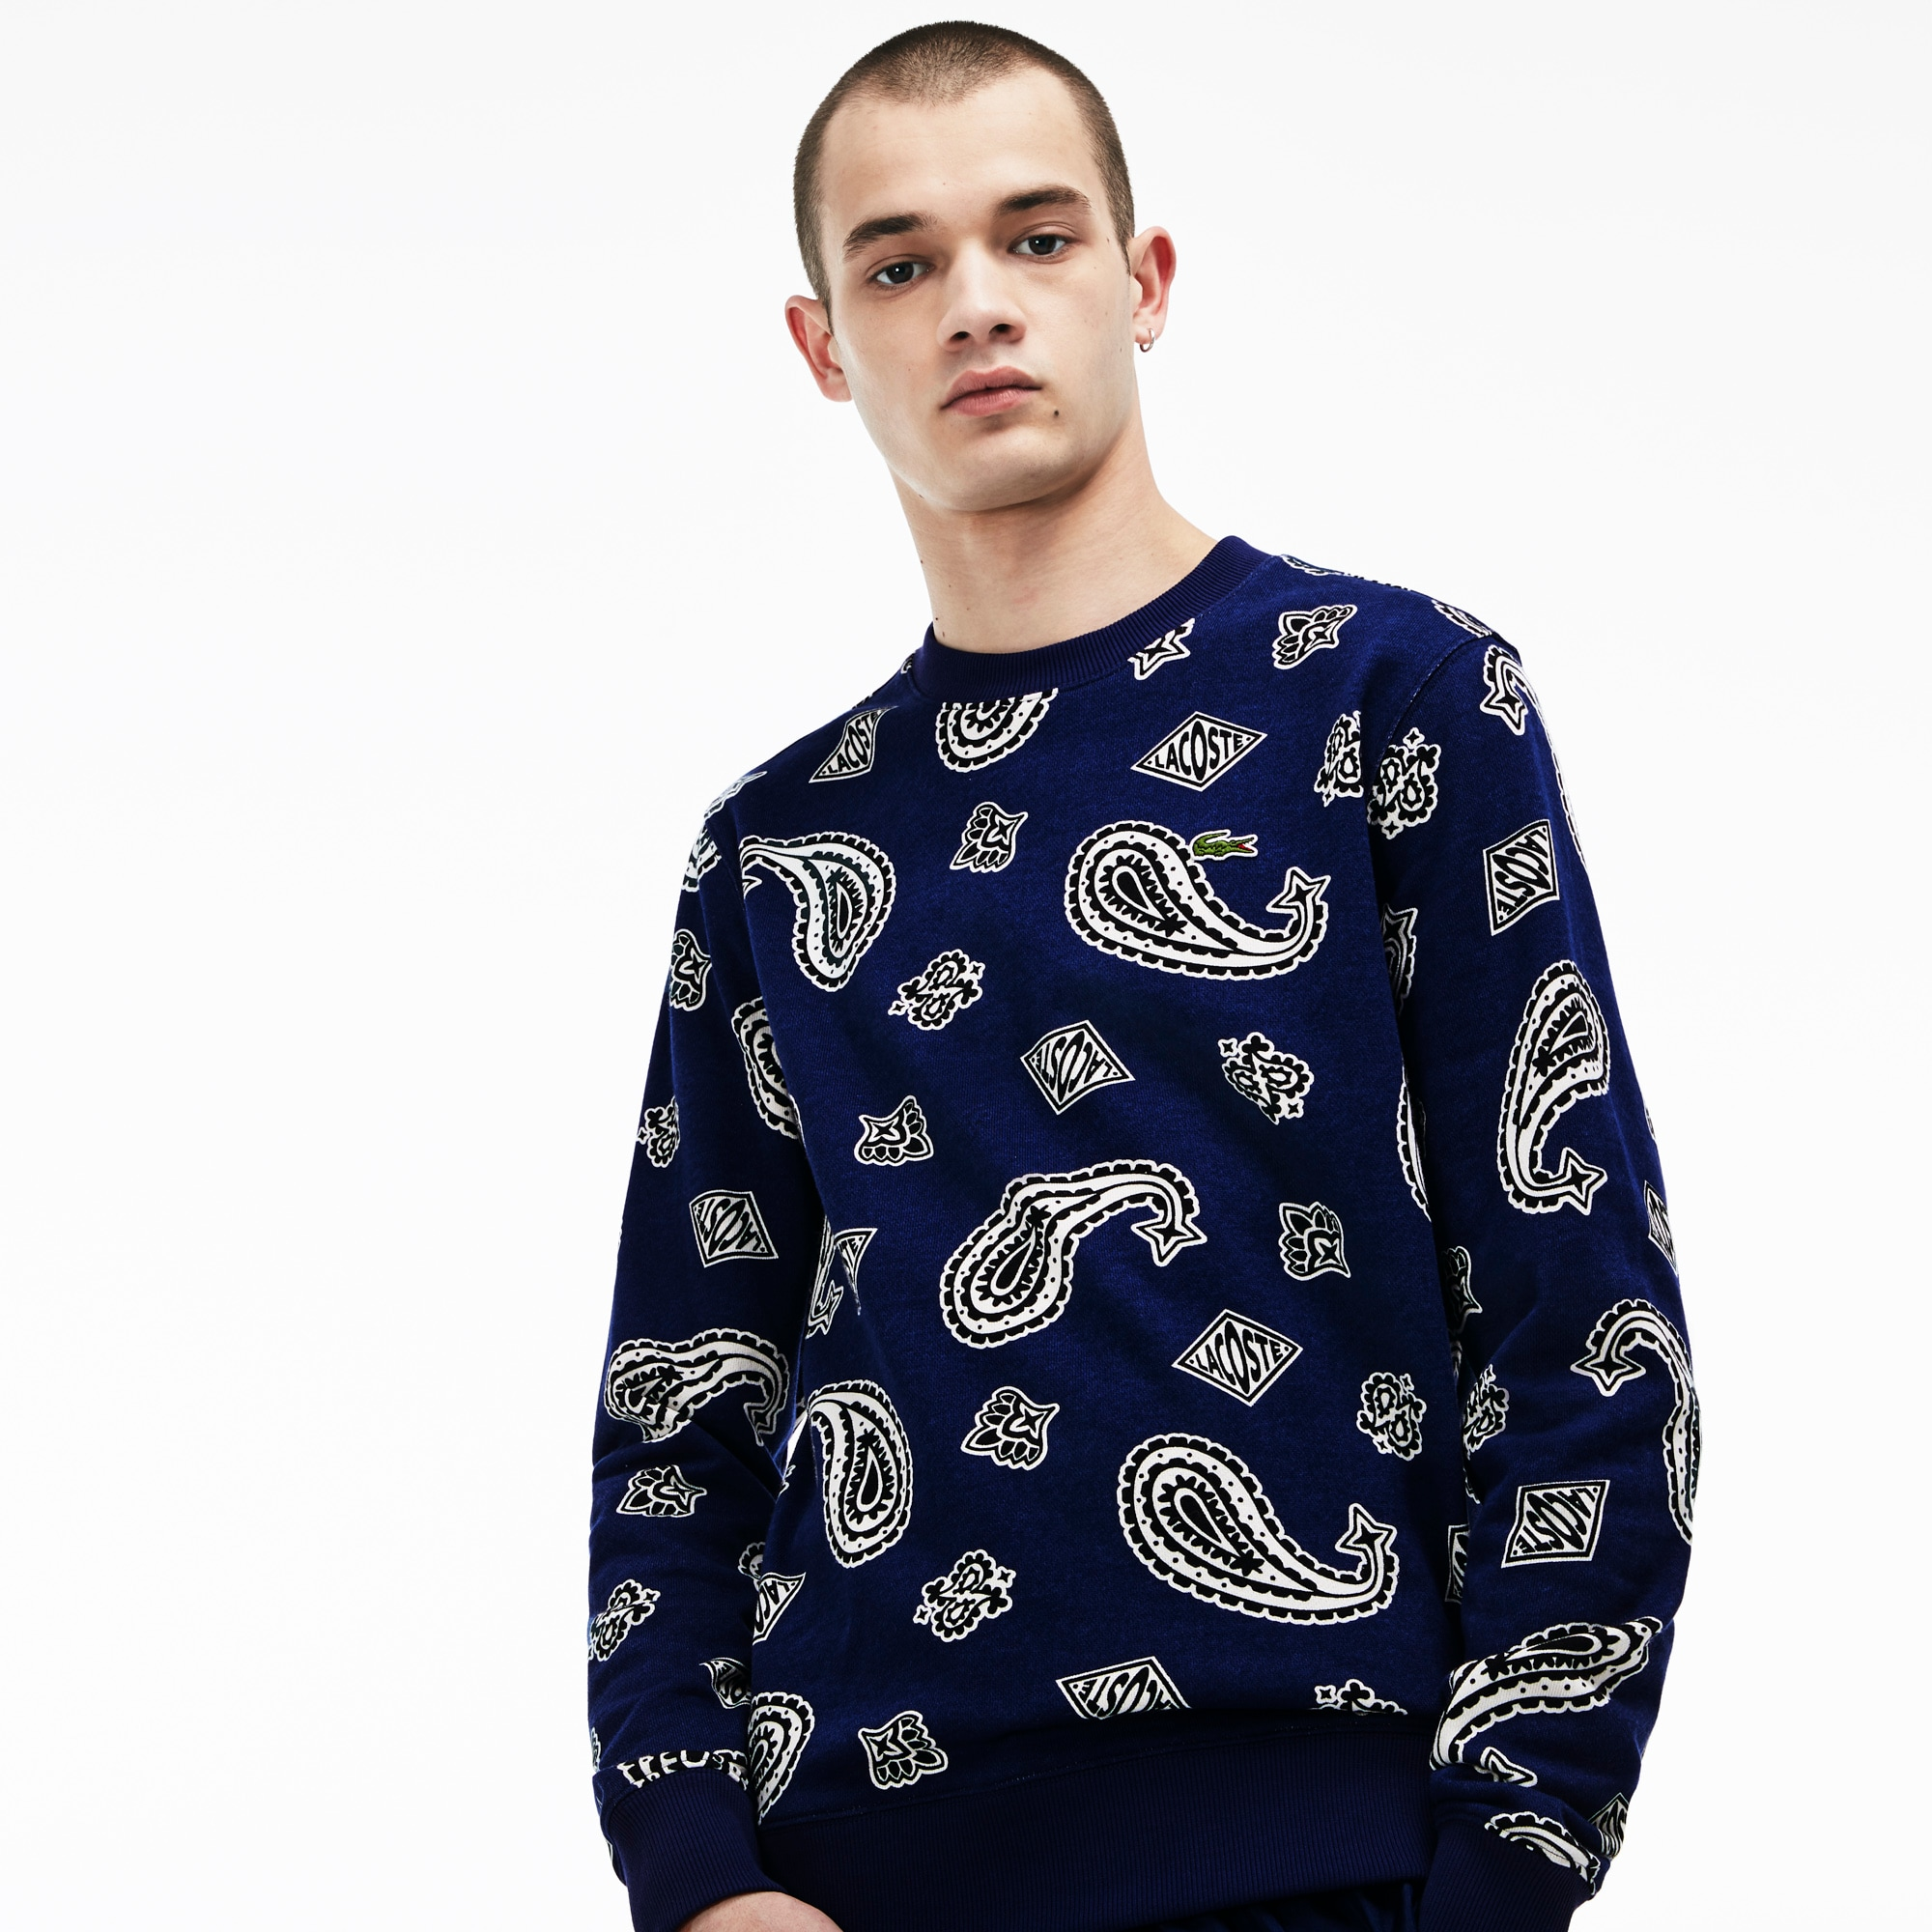 Neck Print Lacoste Live Paisley Fleece Men's Sweatshirt Crew 2HIED9